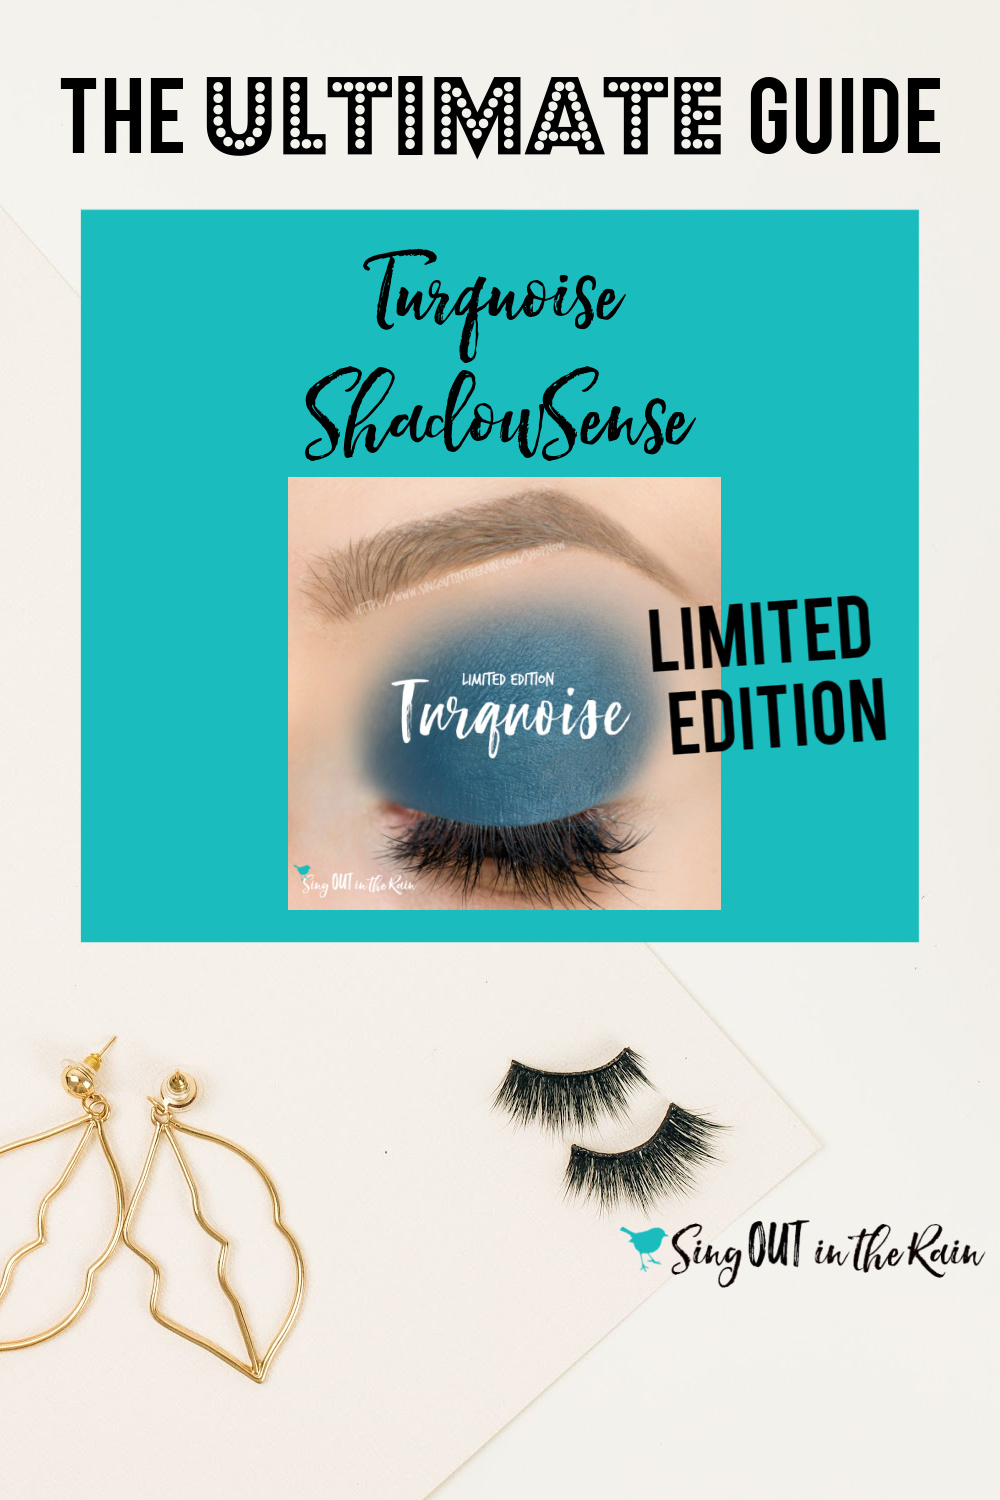 The Ultimate Guide to Turquoise ShadowSense